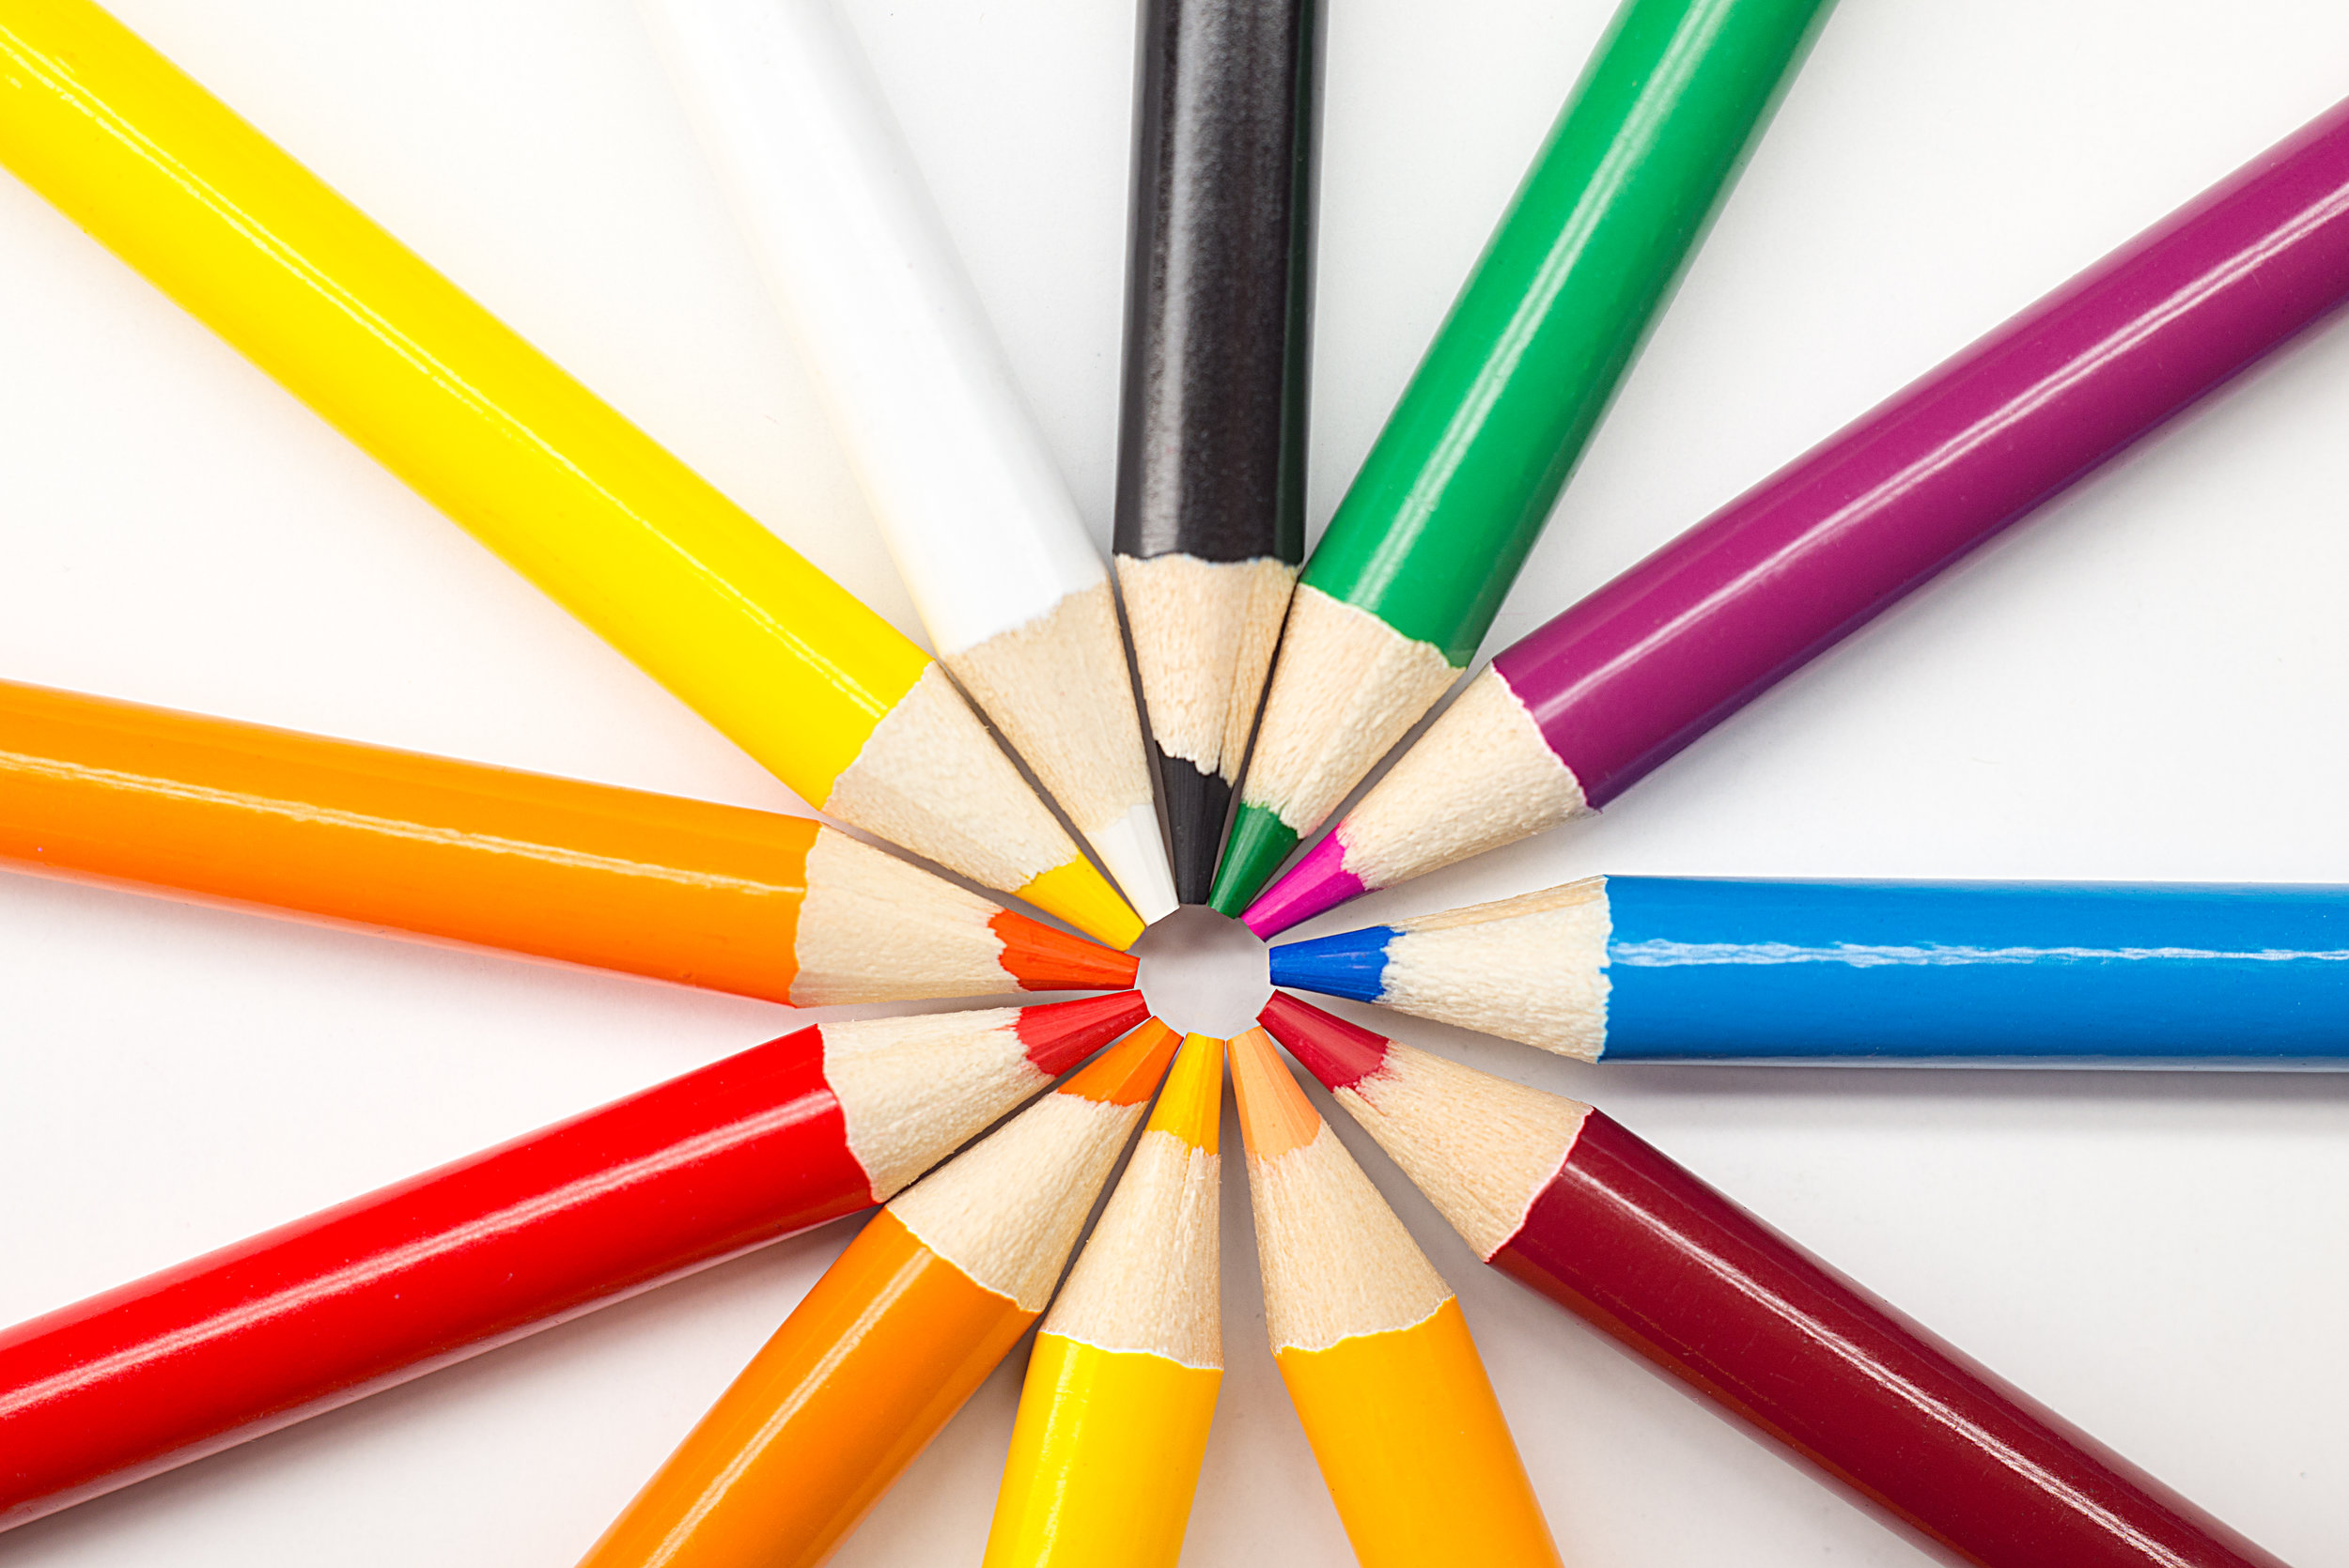 Colorful pencils in a wheel formation. Learn to help children deal with anxiety, fears, stress, anger.